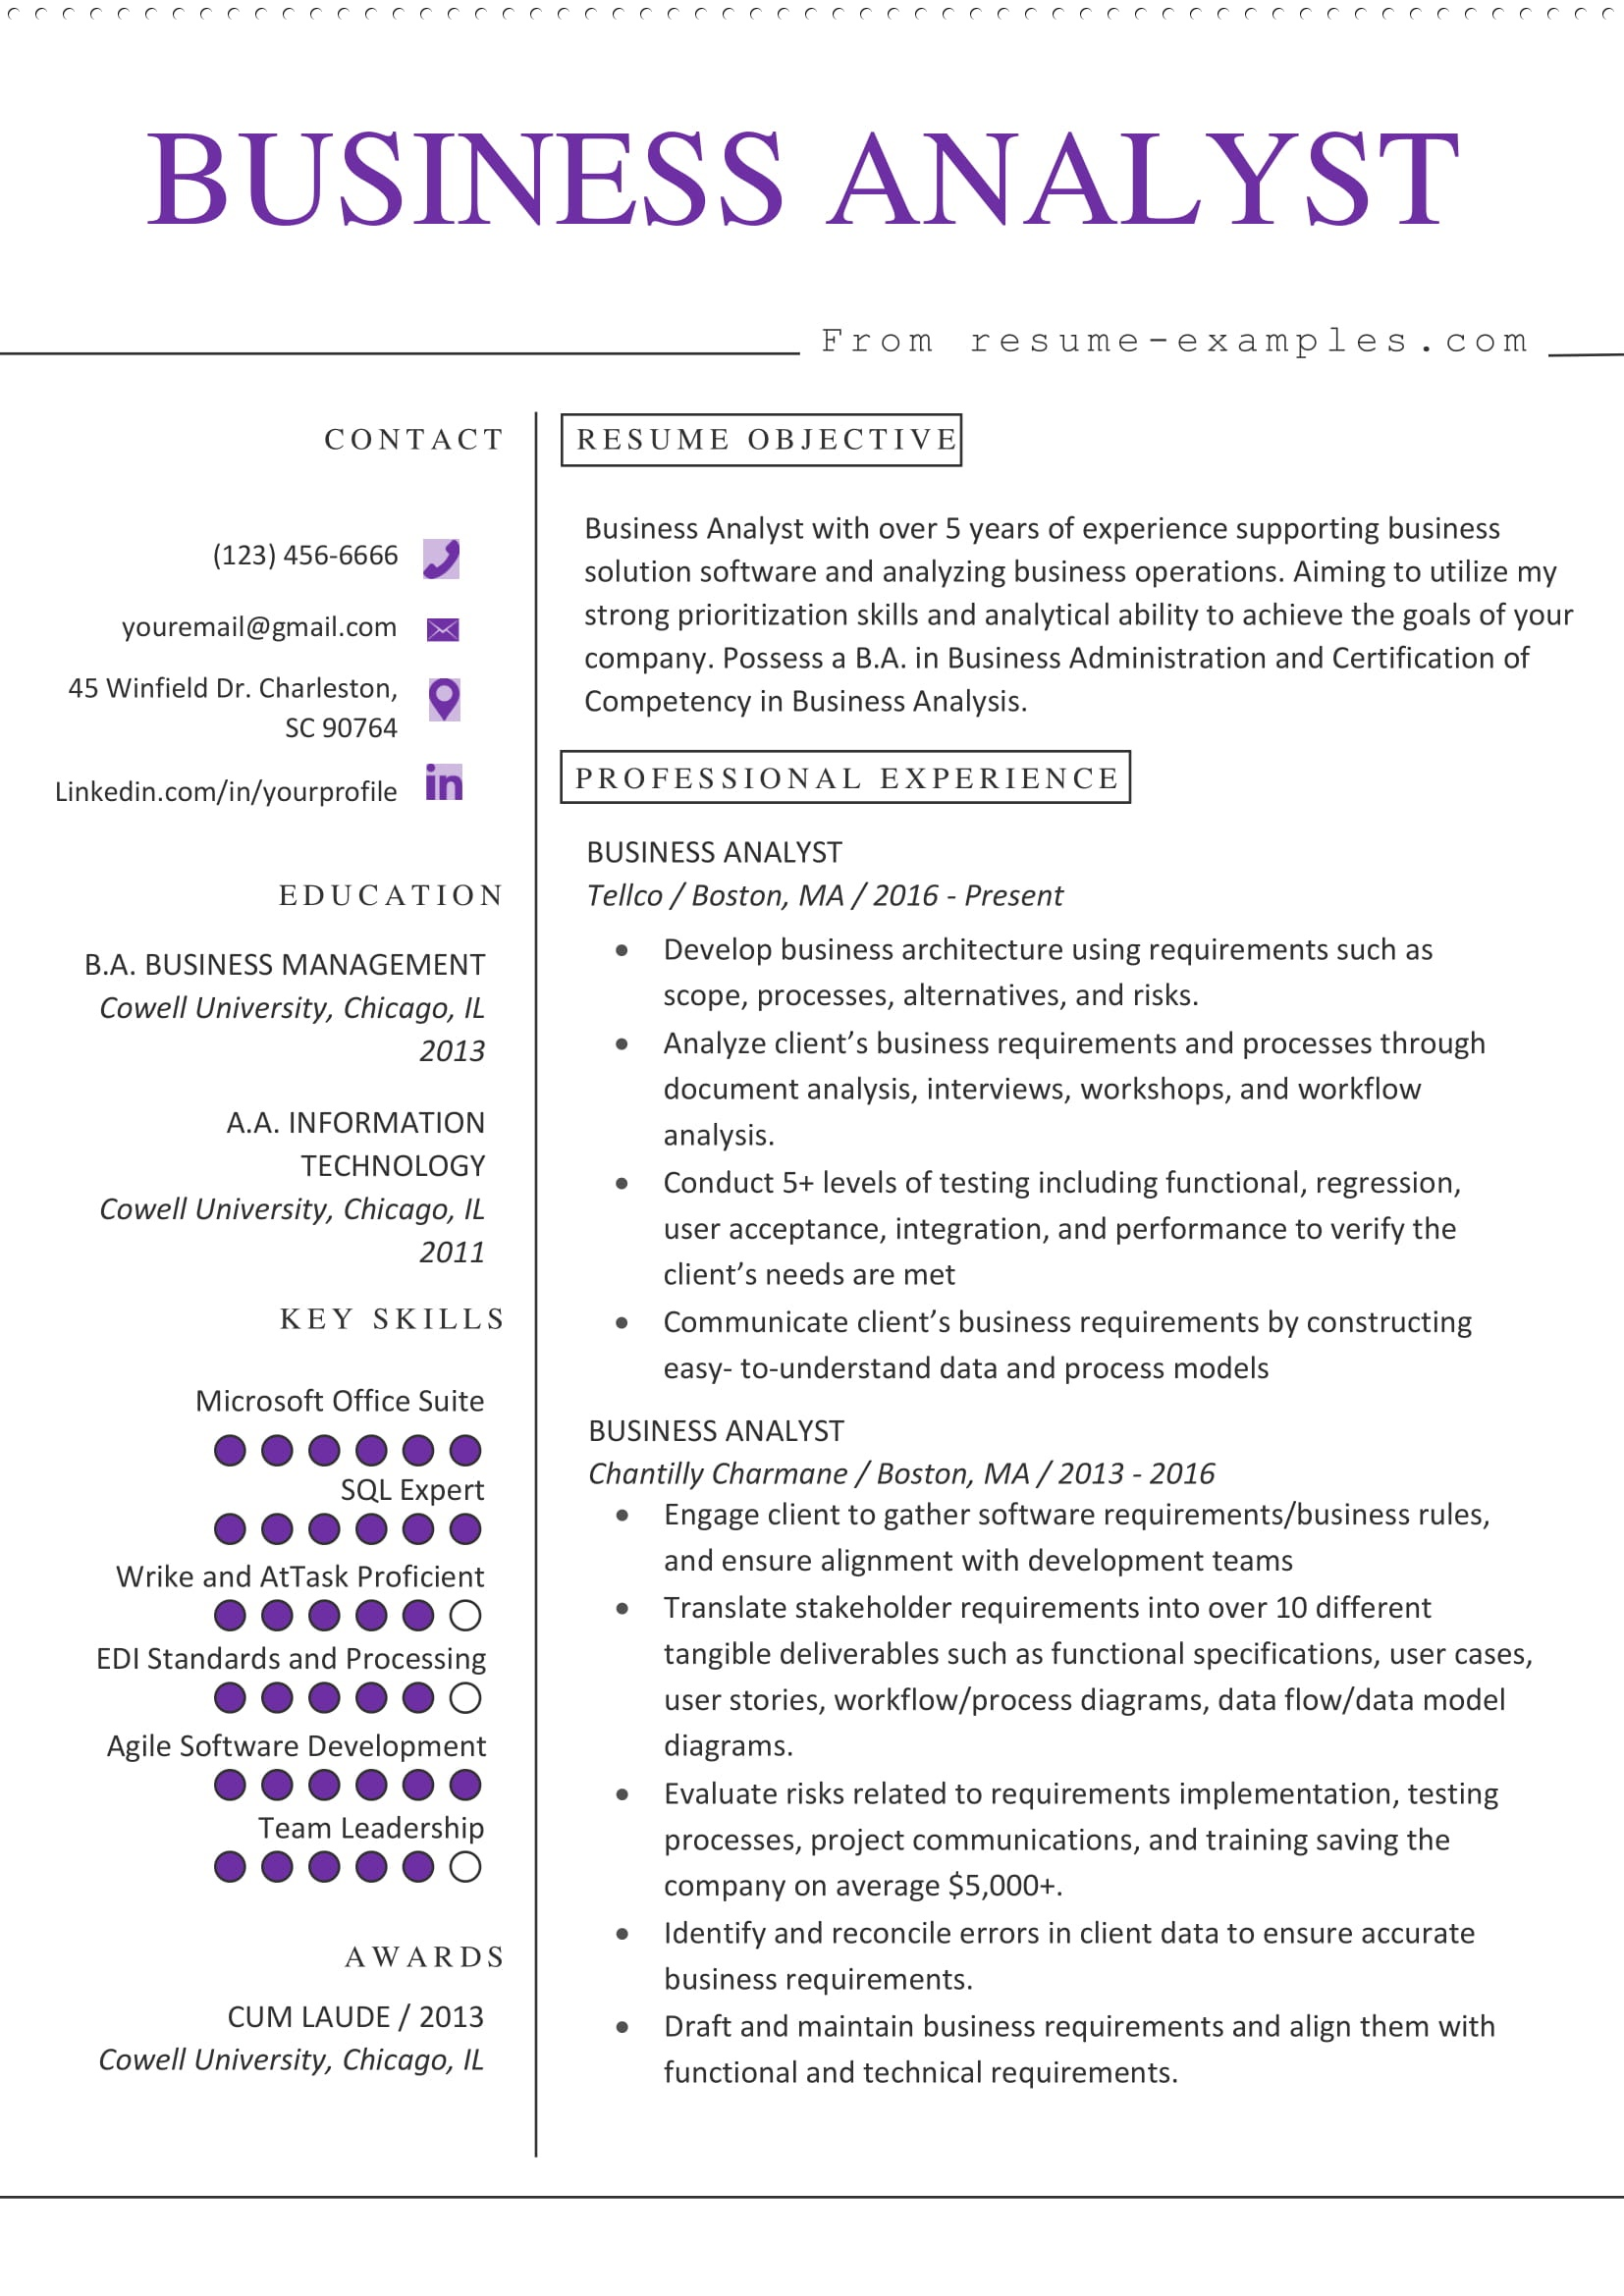 business analyst resume example microsoft word format information technology sample Resume Information Technology Business Analyst Resume Sample